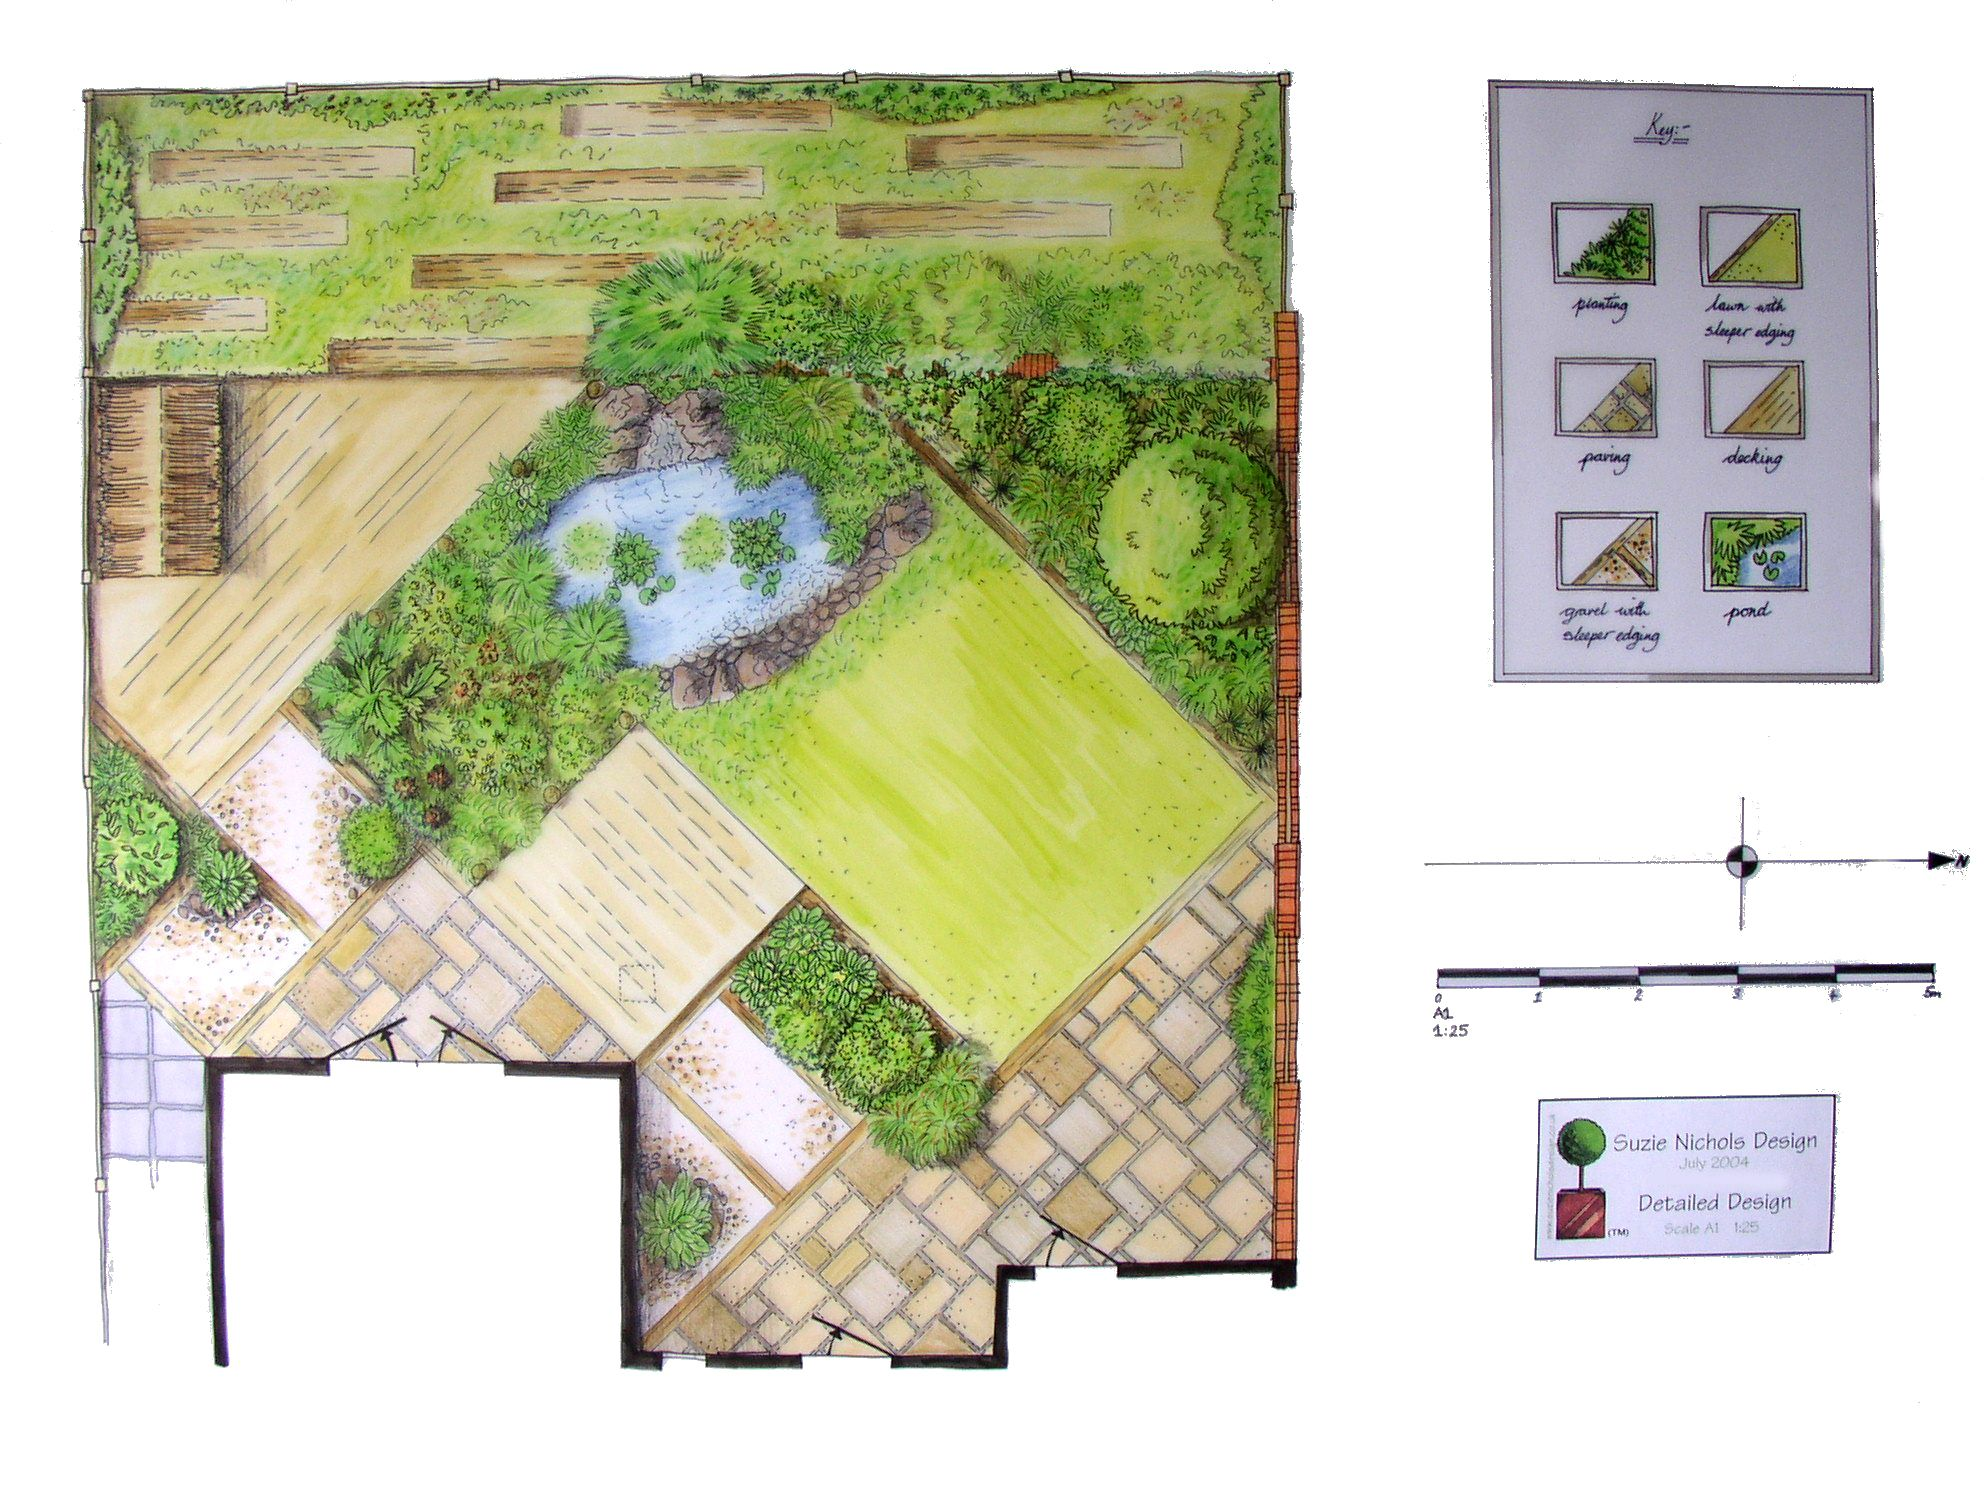 large image of suzie nichols wildlife garden design